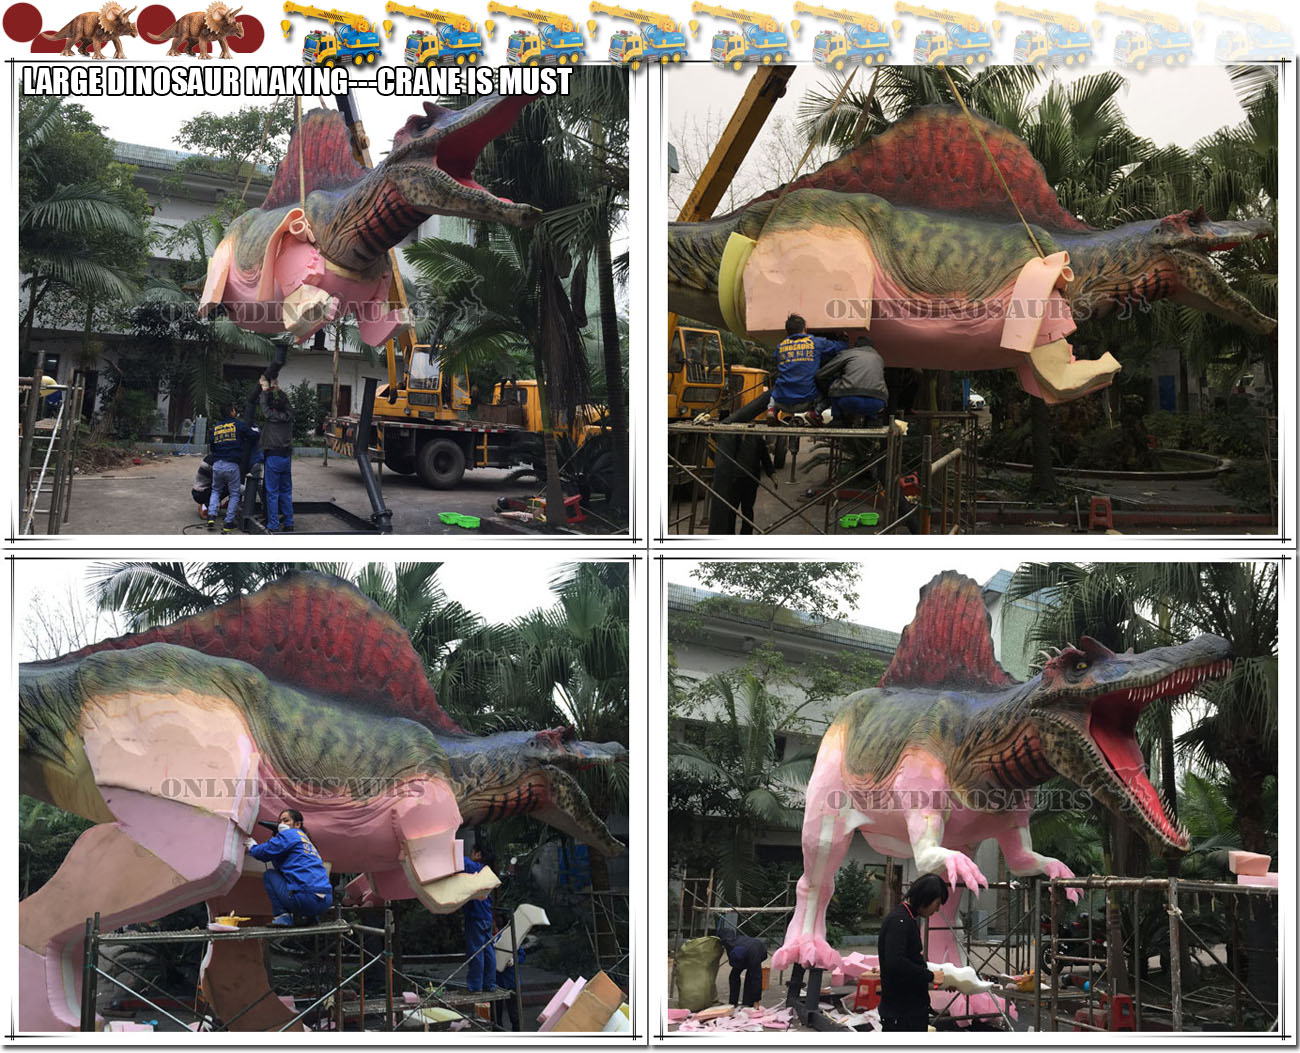 Crane for Large Dinosaur Making